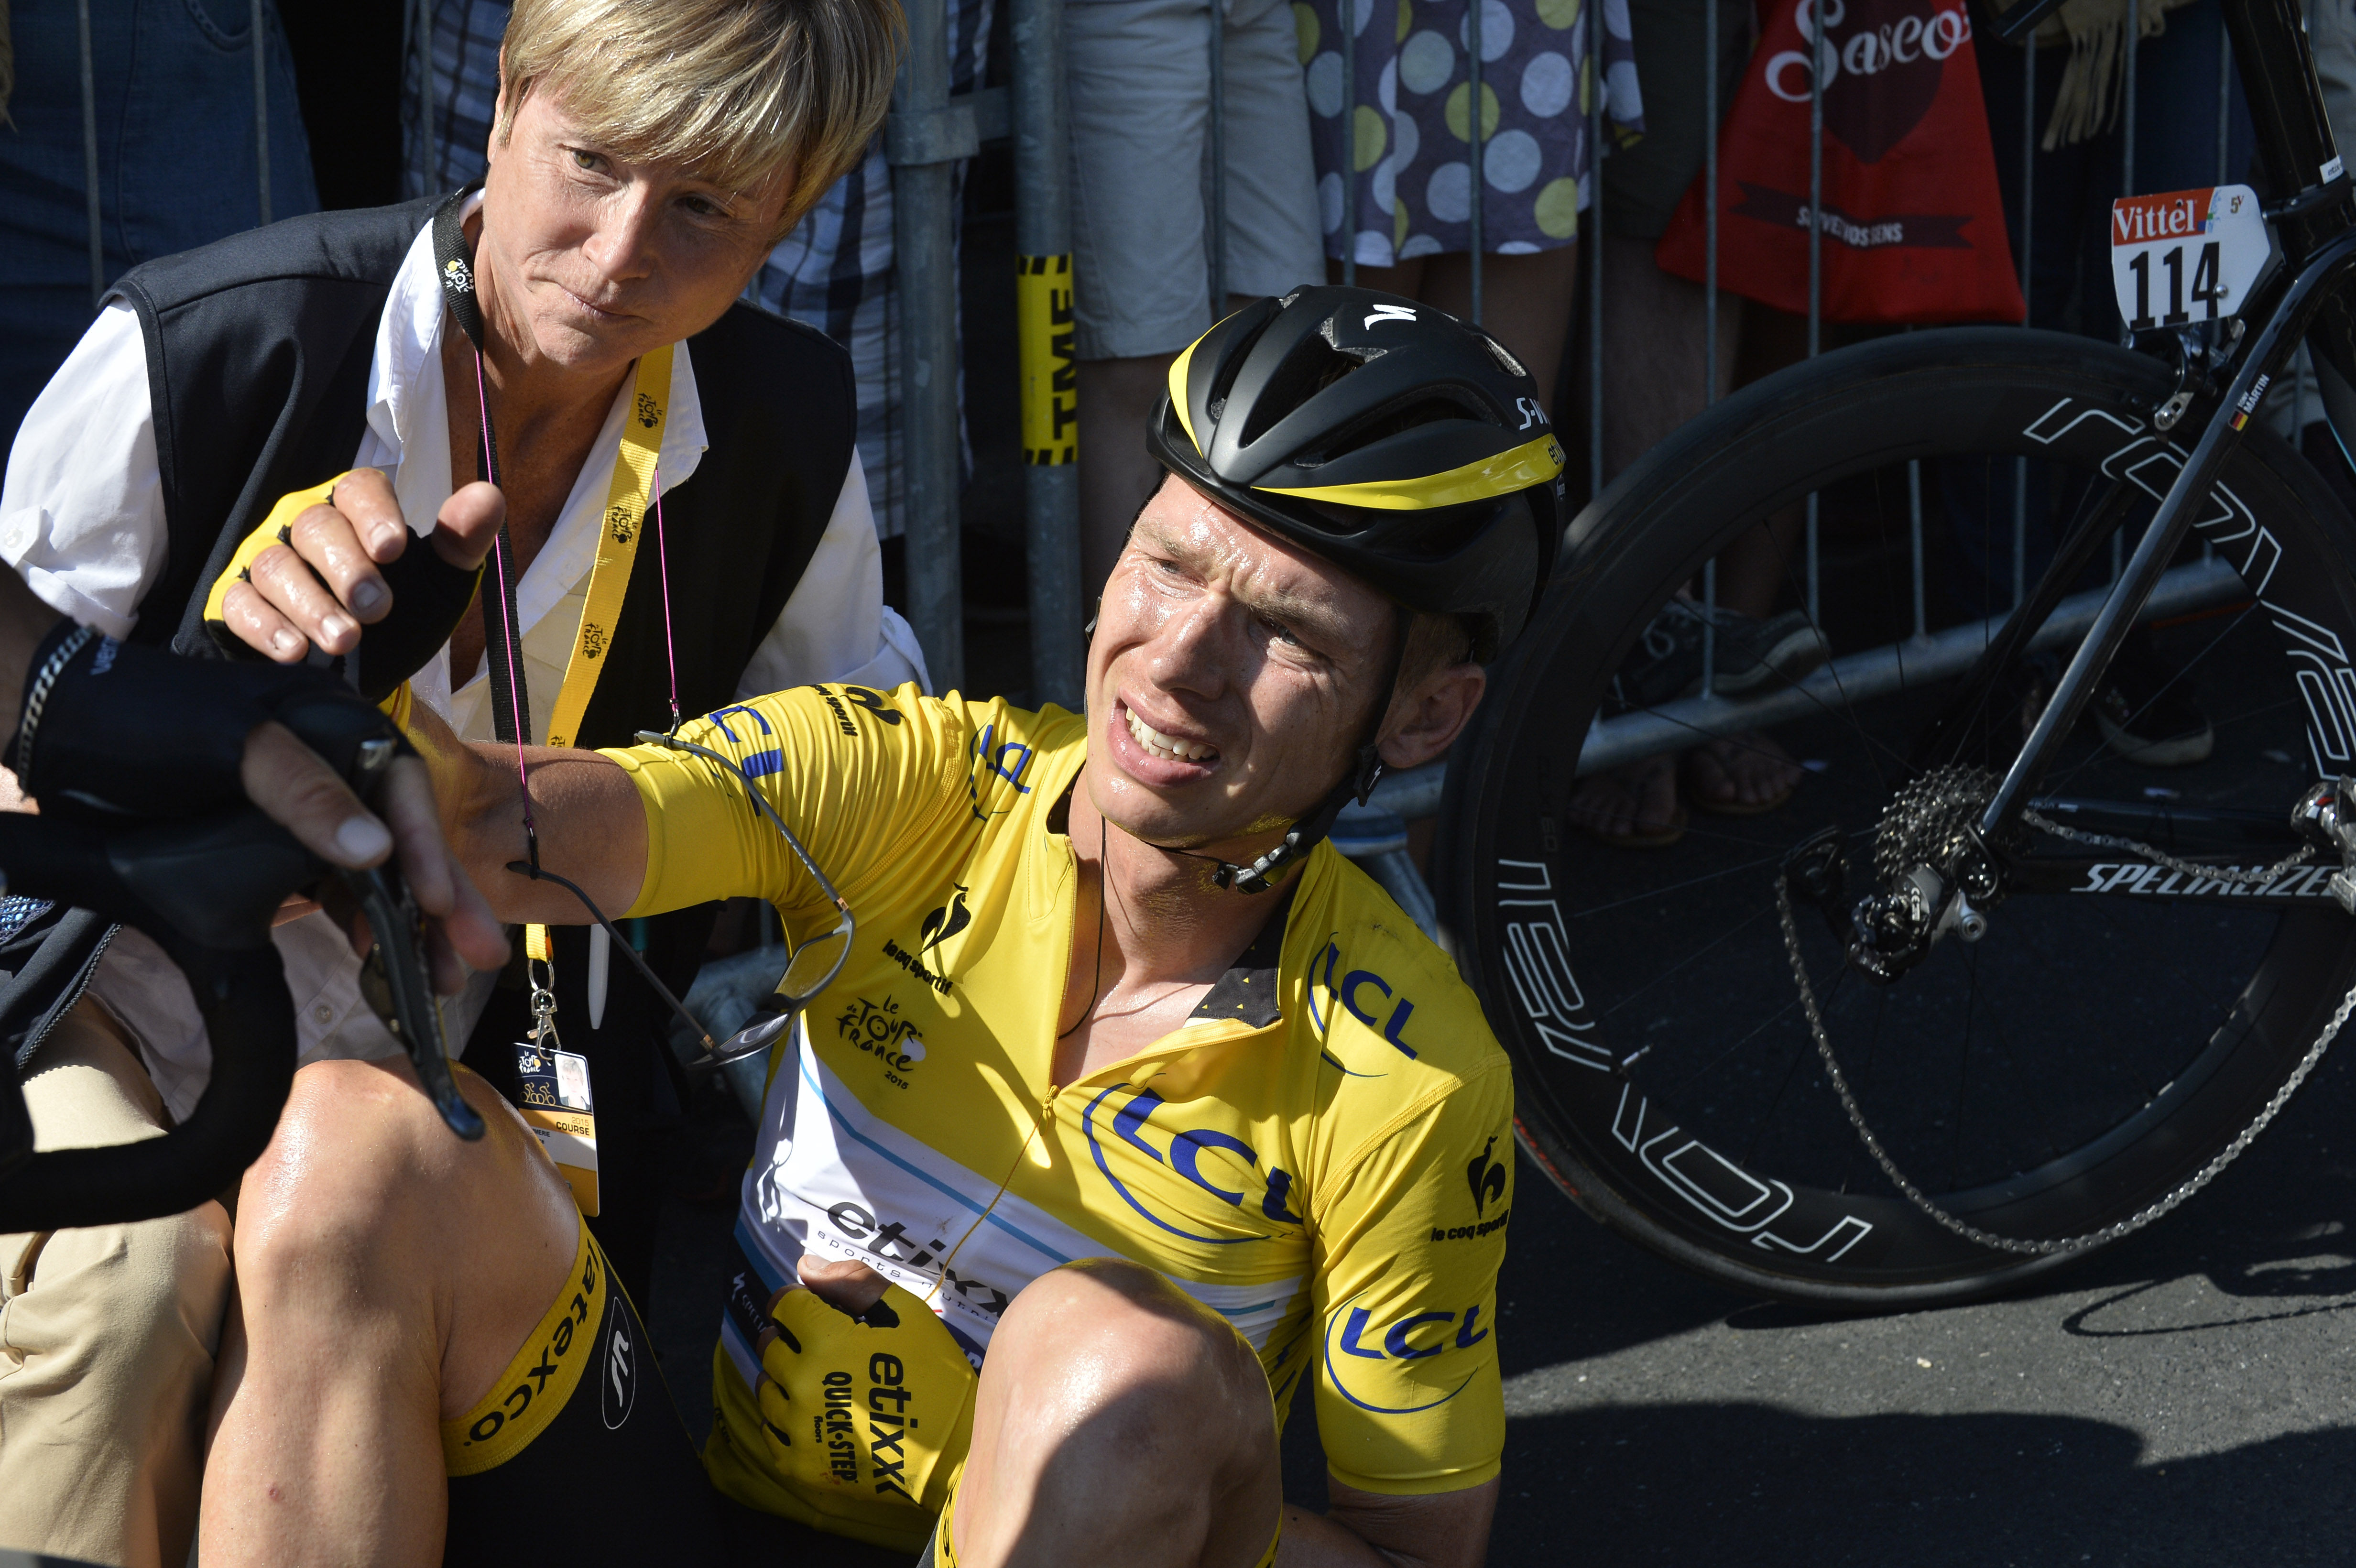 Germany's Tony Martin, wearing the overall leader's yellow jersey, lies on the road with a broken collar bone after crashing in the last kilometers of the sixth stage of the Tour de France cycling race over 191.5 kilometers (119 miles) with start in Abbeville and finish in Le Havre, France, July 9, 2015